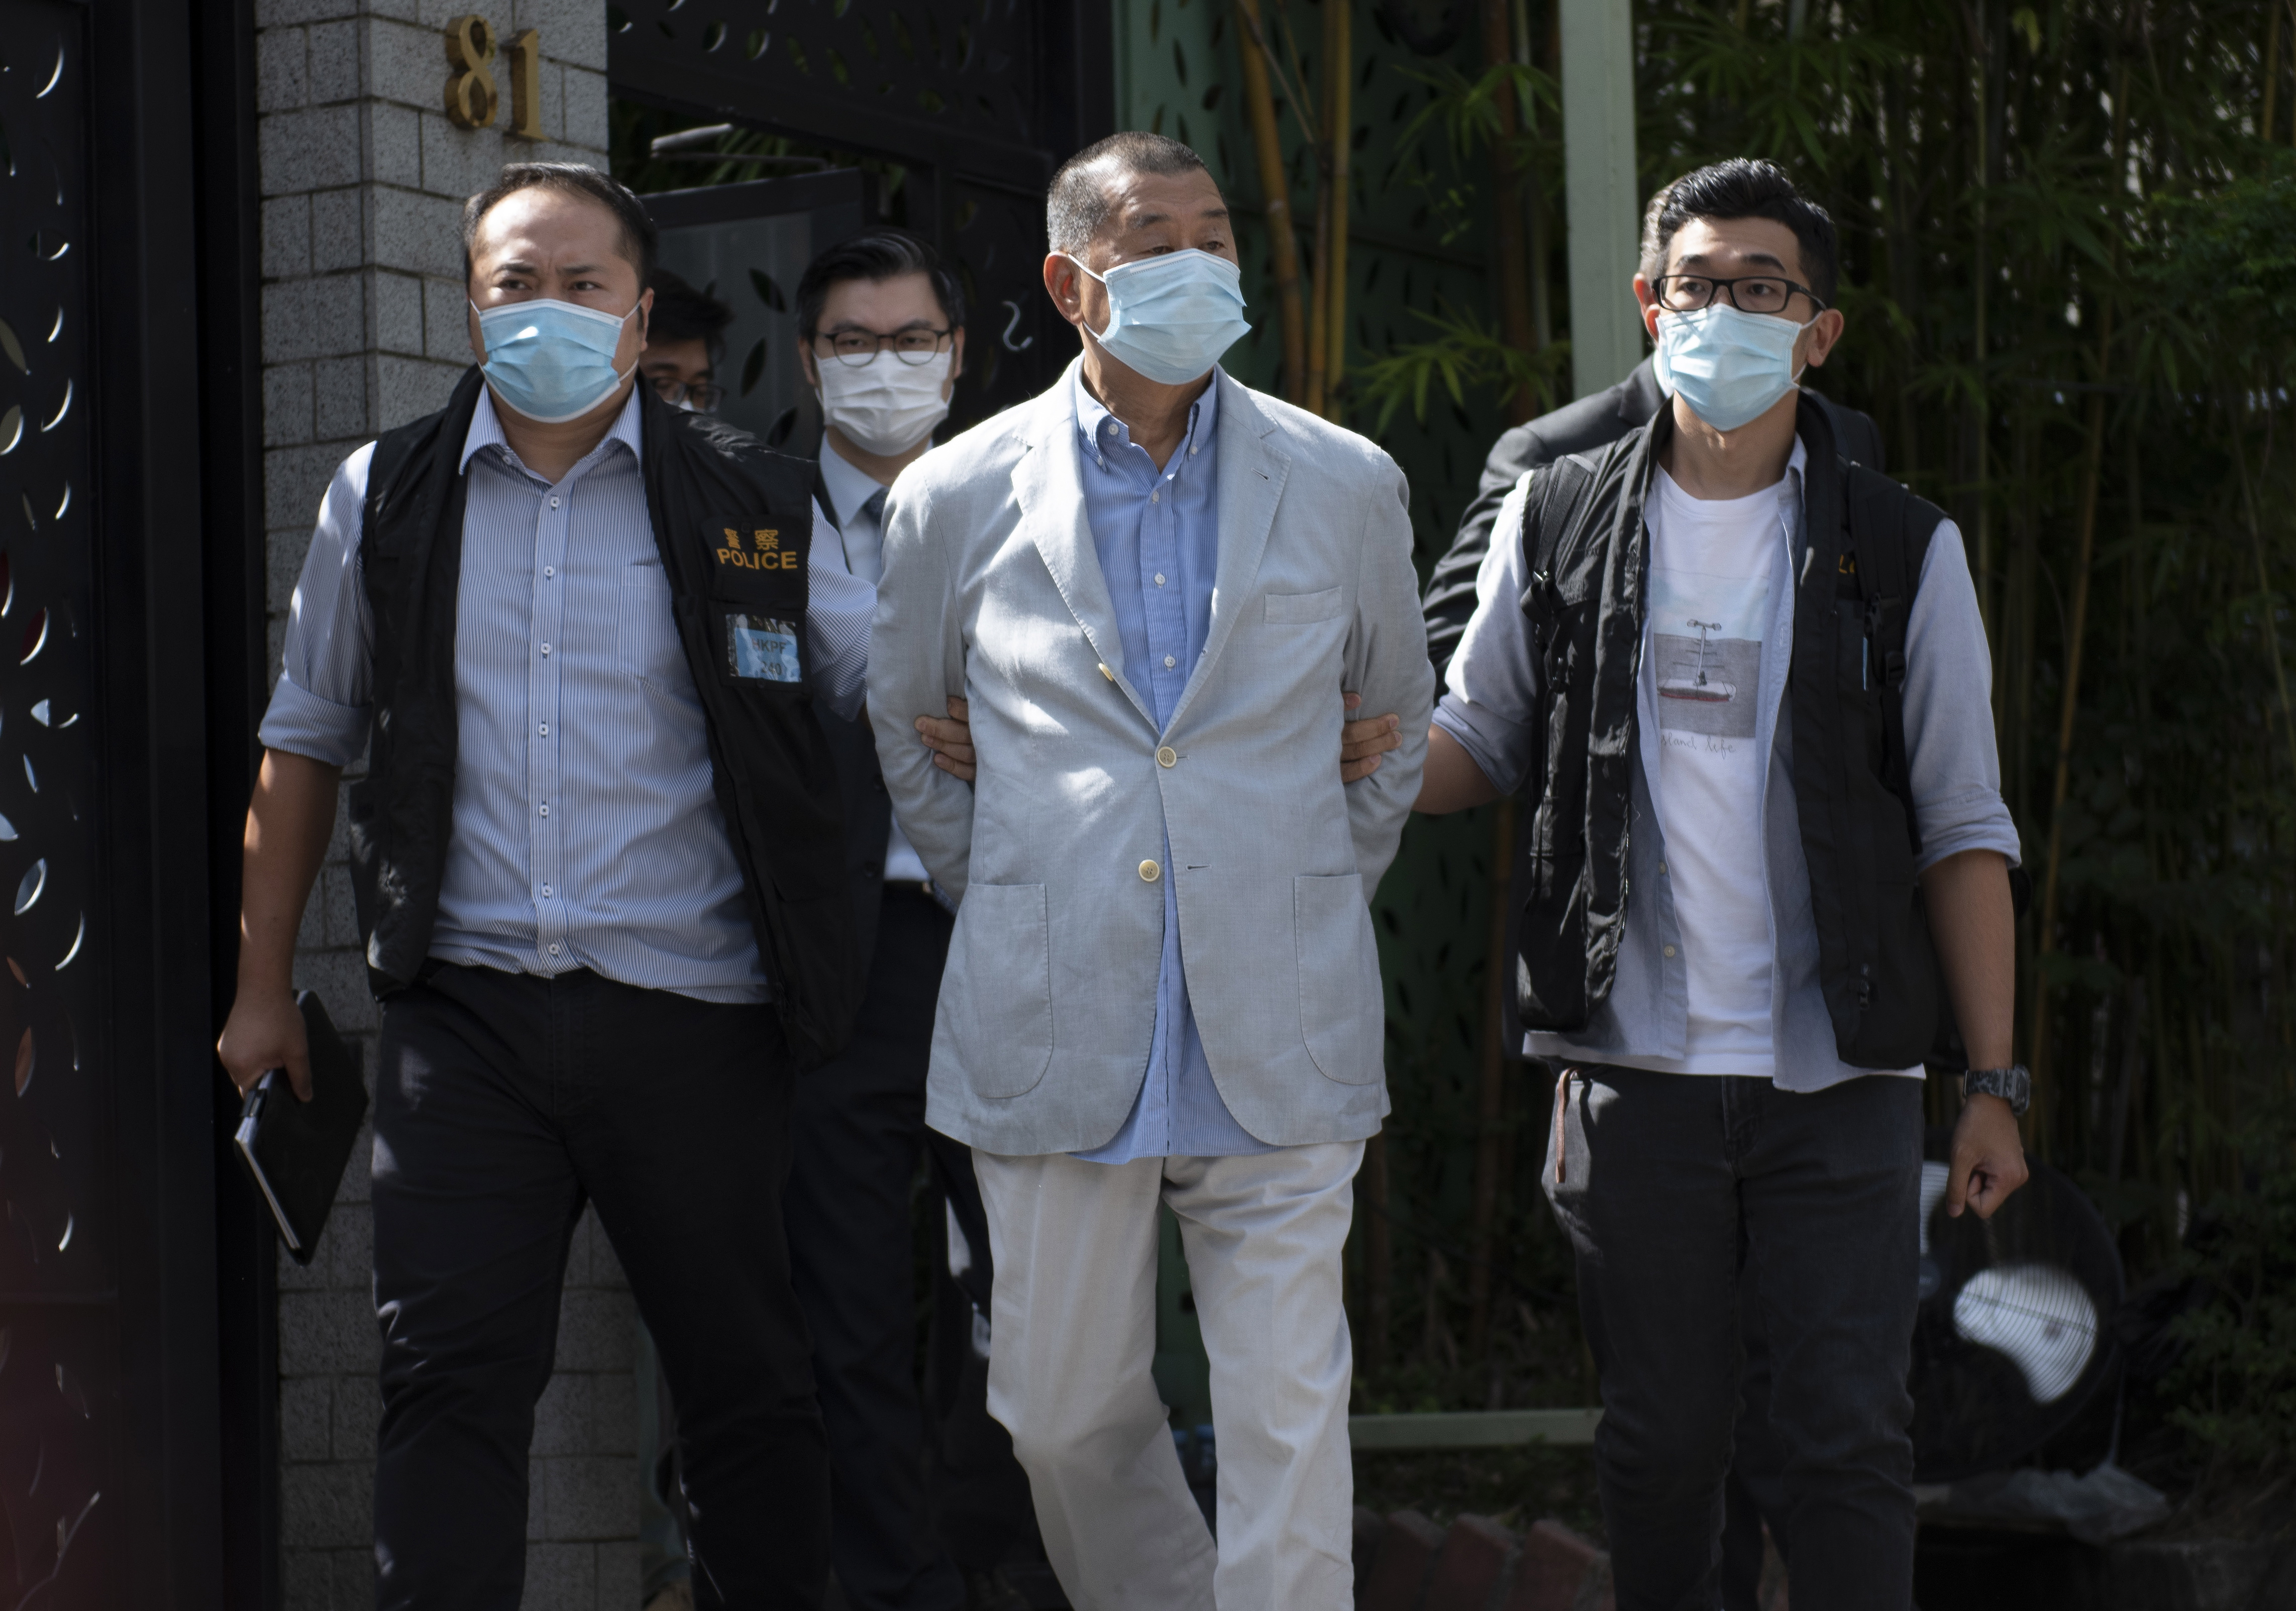 Hong Kong police escort Jimmy Lai (C), media tycoon and founder of Apple Daily, after he was arrested at his home in Hong Kong on August 10, 2020.